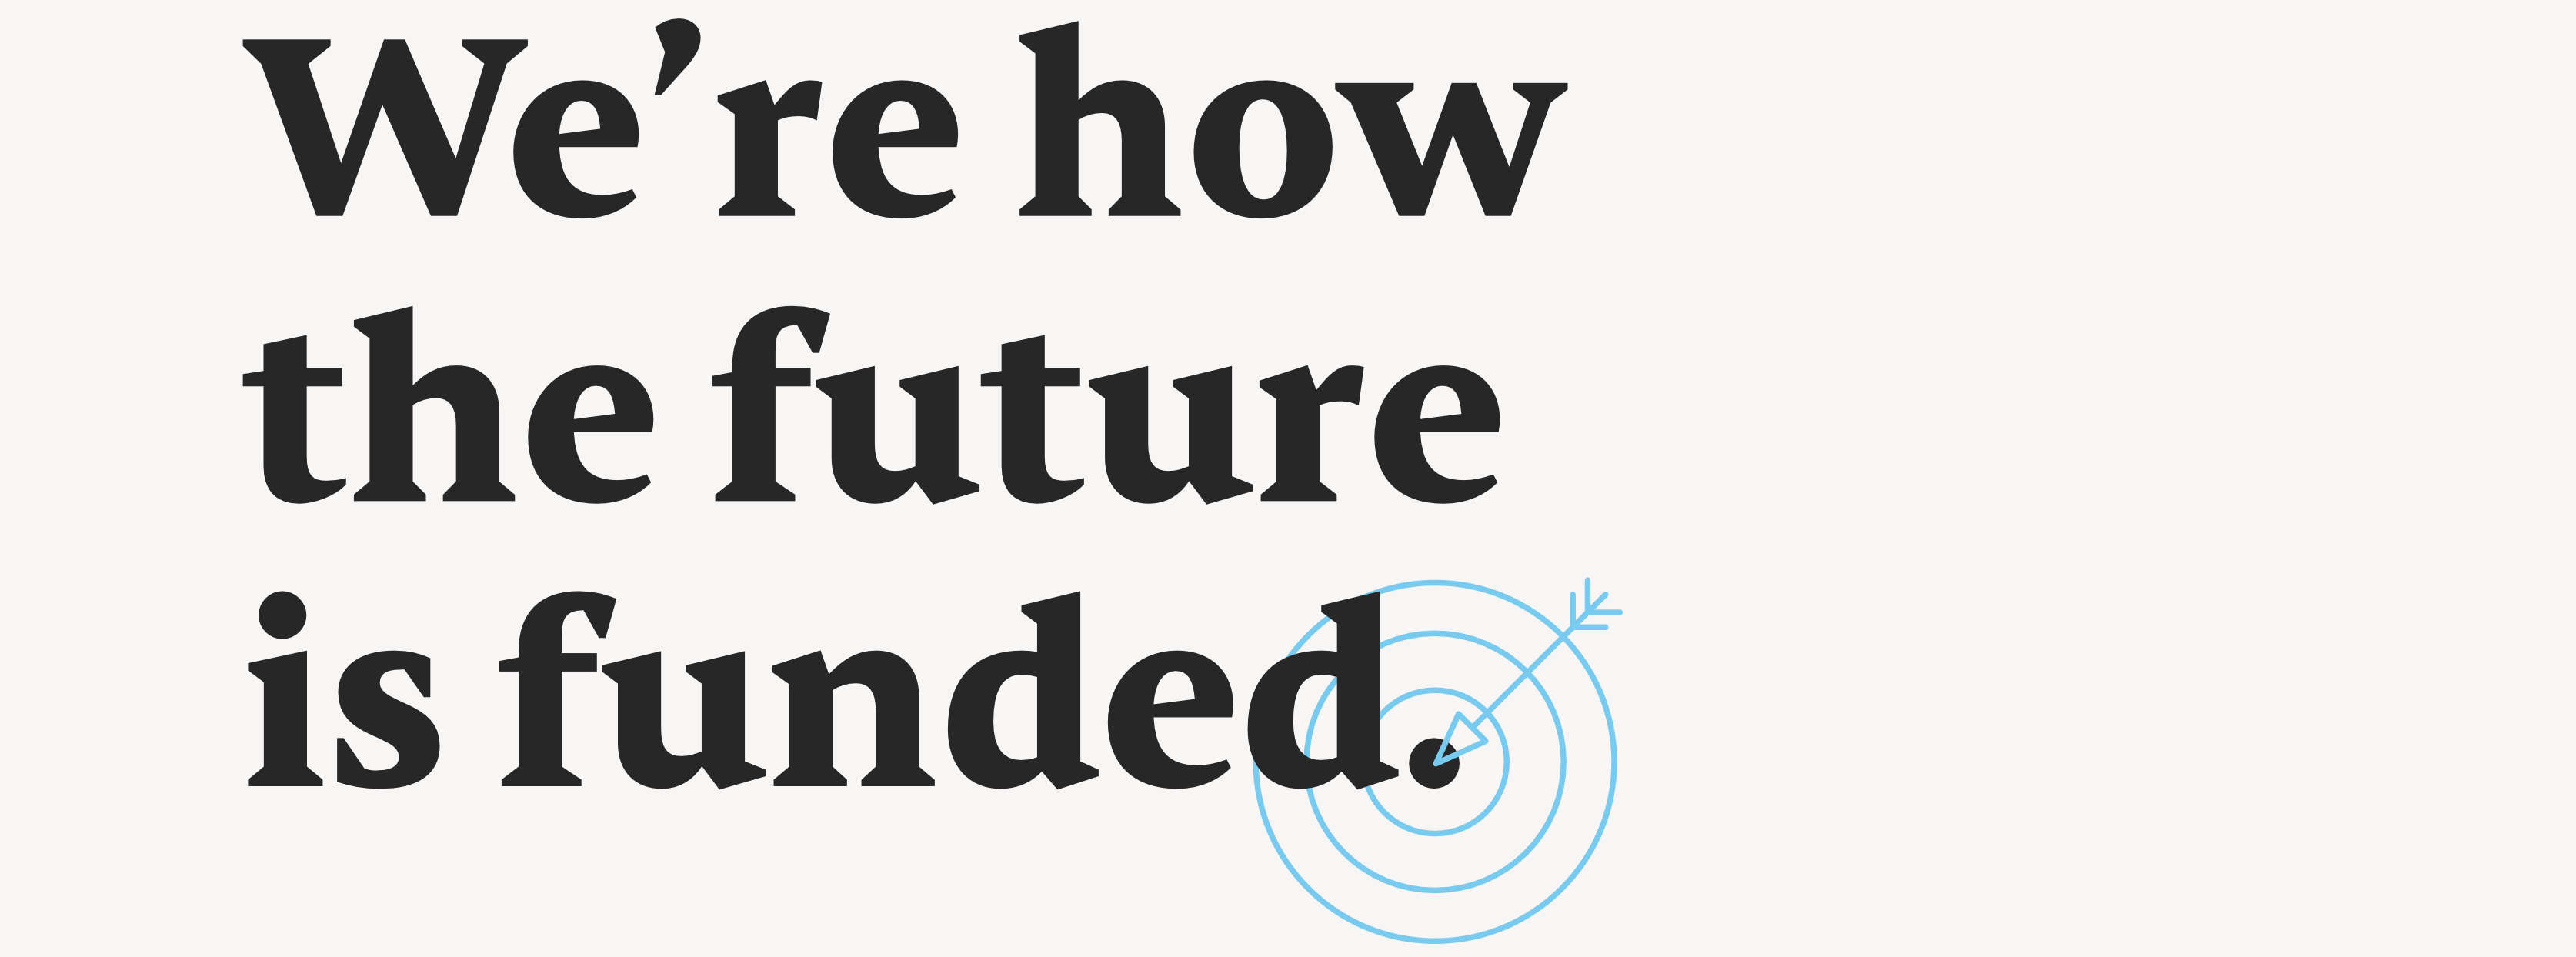 We're how the future is funded.